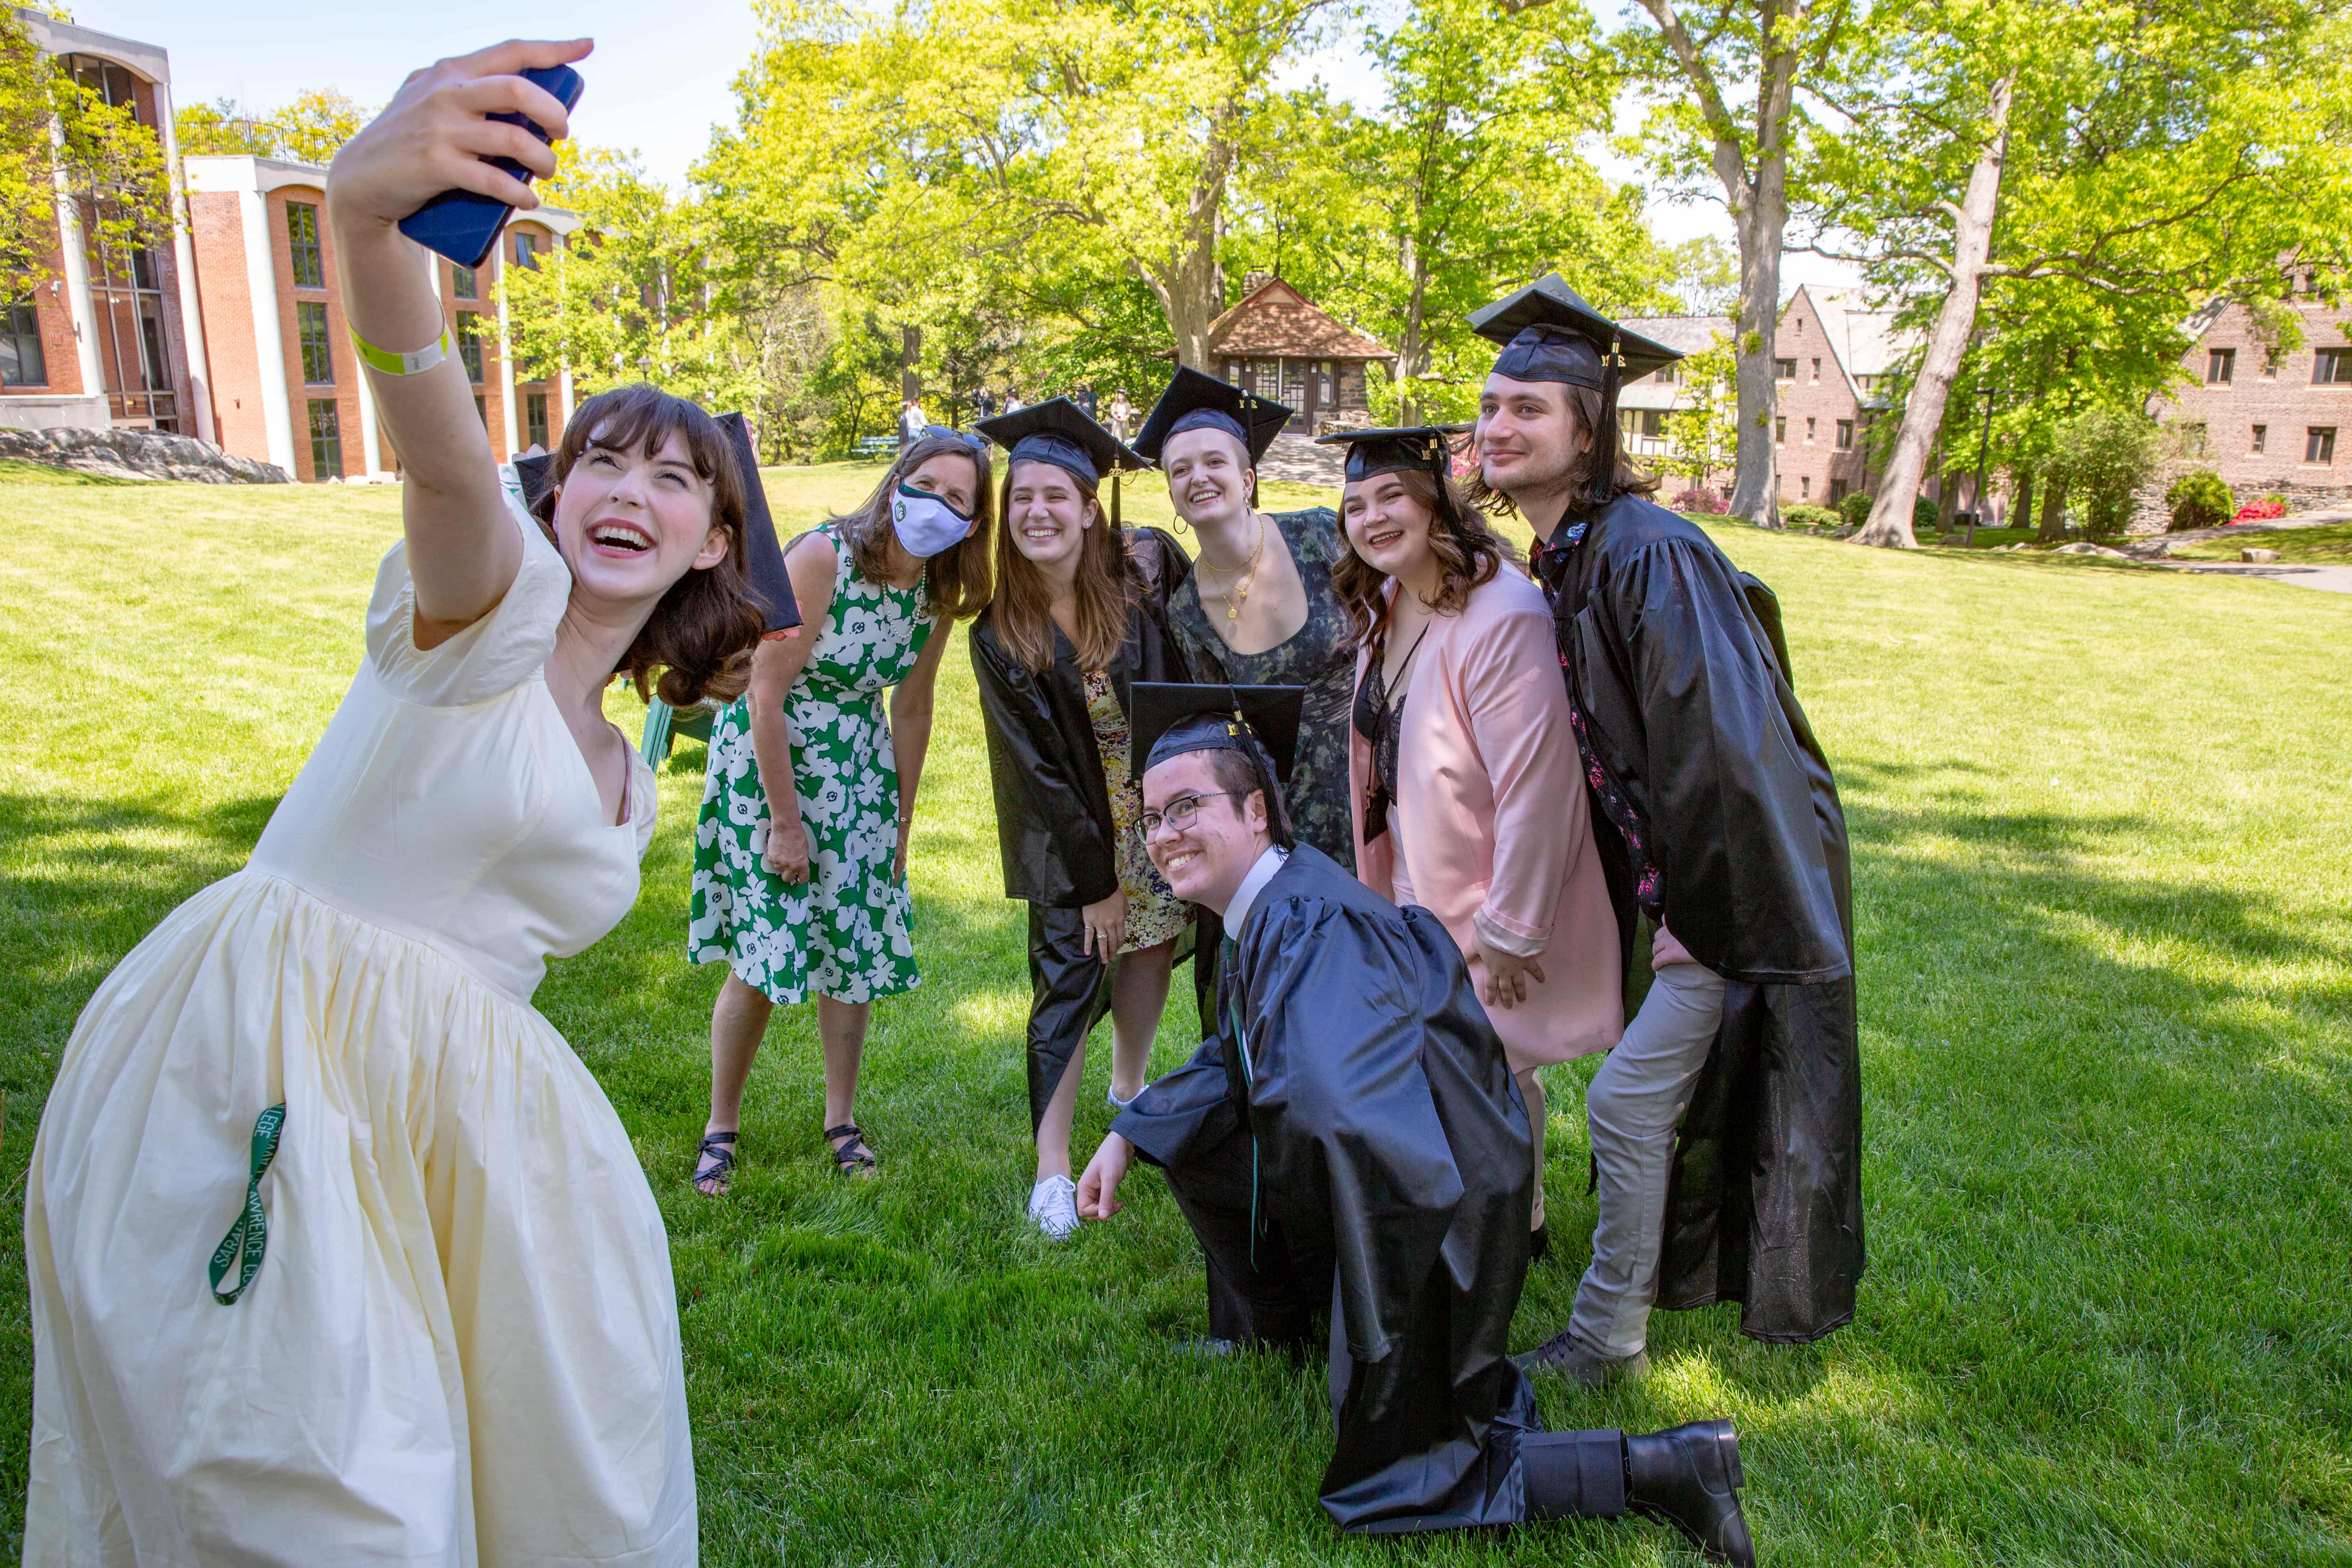 Students snapped selfies during a picnic on Westlands Lawn following the ceremony